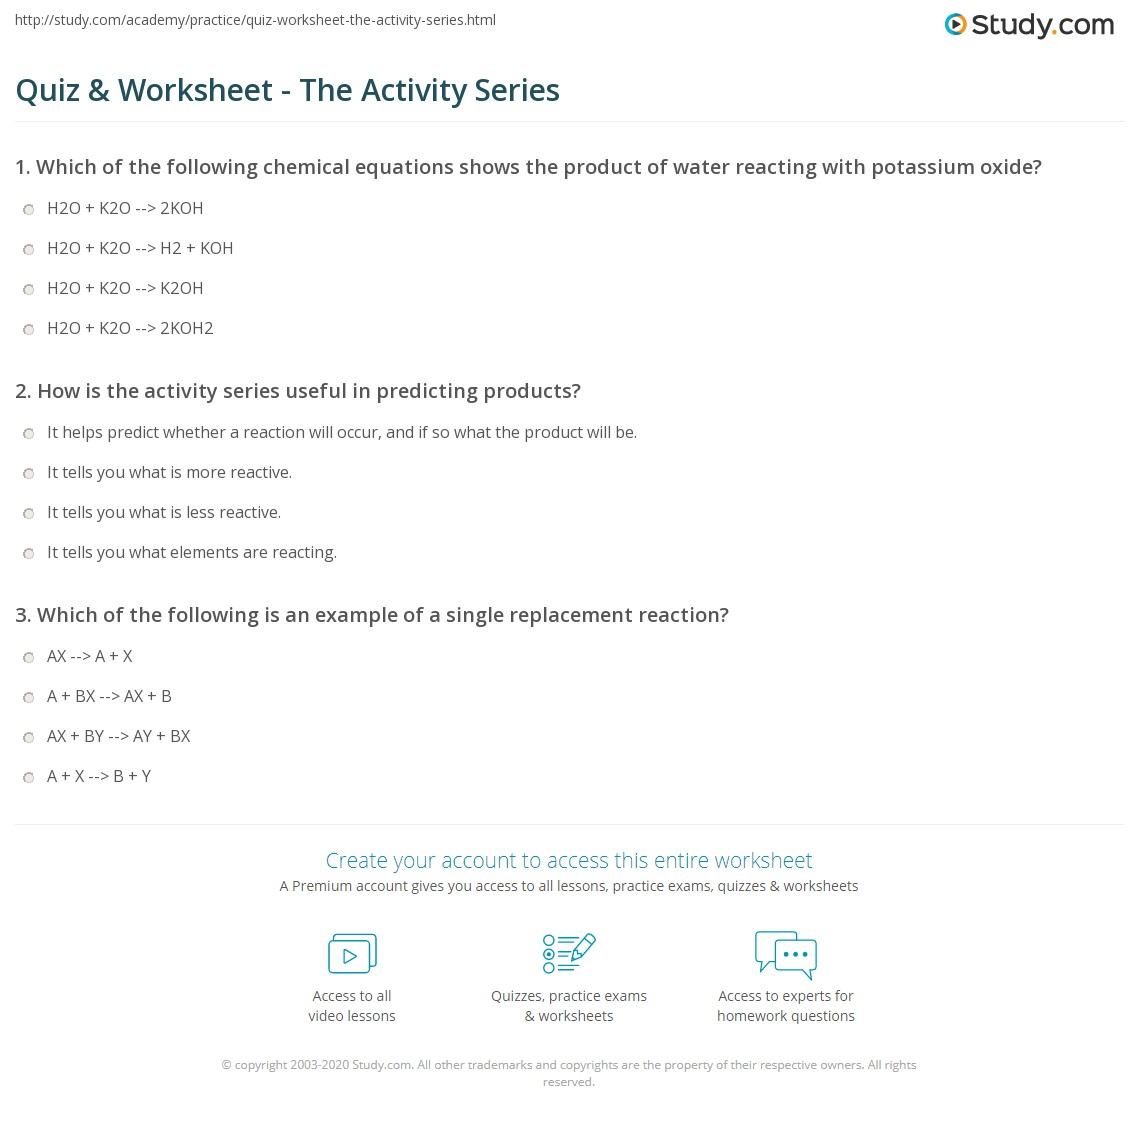 Aldiablosus  Unique Quiz Amp Worksheet  The Activity Series  Studycom With Great Print The Activity Series Predicting Products Of Single Displacement Reactions Worksheet With Alluring Rhyme Worksheet Also Math  Grade Worksheets In Addition Body Measurement Worksheet And Real Estate Investment Worksheet As Well As Easy Worksheet Additionally Reading Tape Measure Worksheet From Studycom With Aldiablosus  Great Quiz Amp Worksheet  The Activity Series  Studycom With Alluring Print The Activity Series Predicting Products Of Single Displacement Reactions Worksheet And Unique Rhyme Worksheet Also Math  Grade Worksheets In Addition Body Measurement Worksheet From Studycom